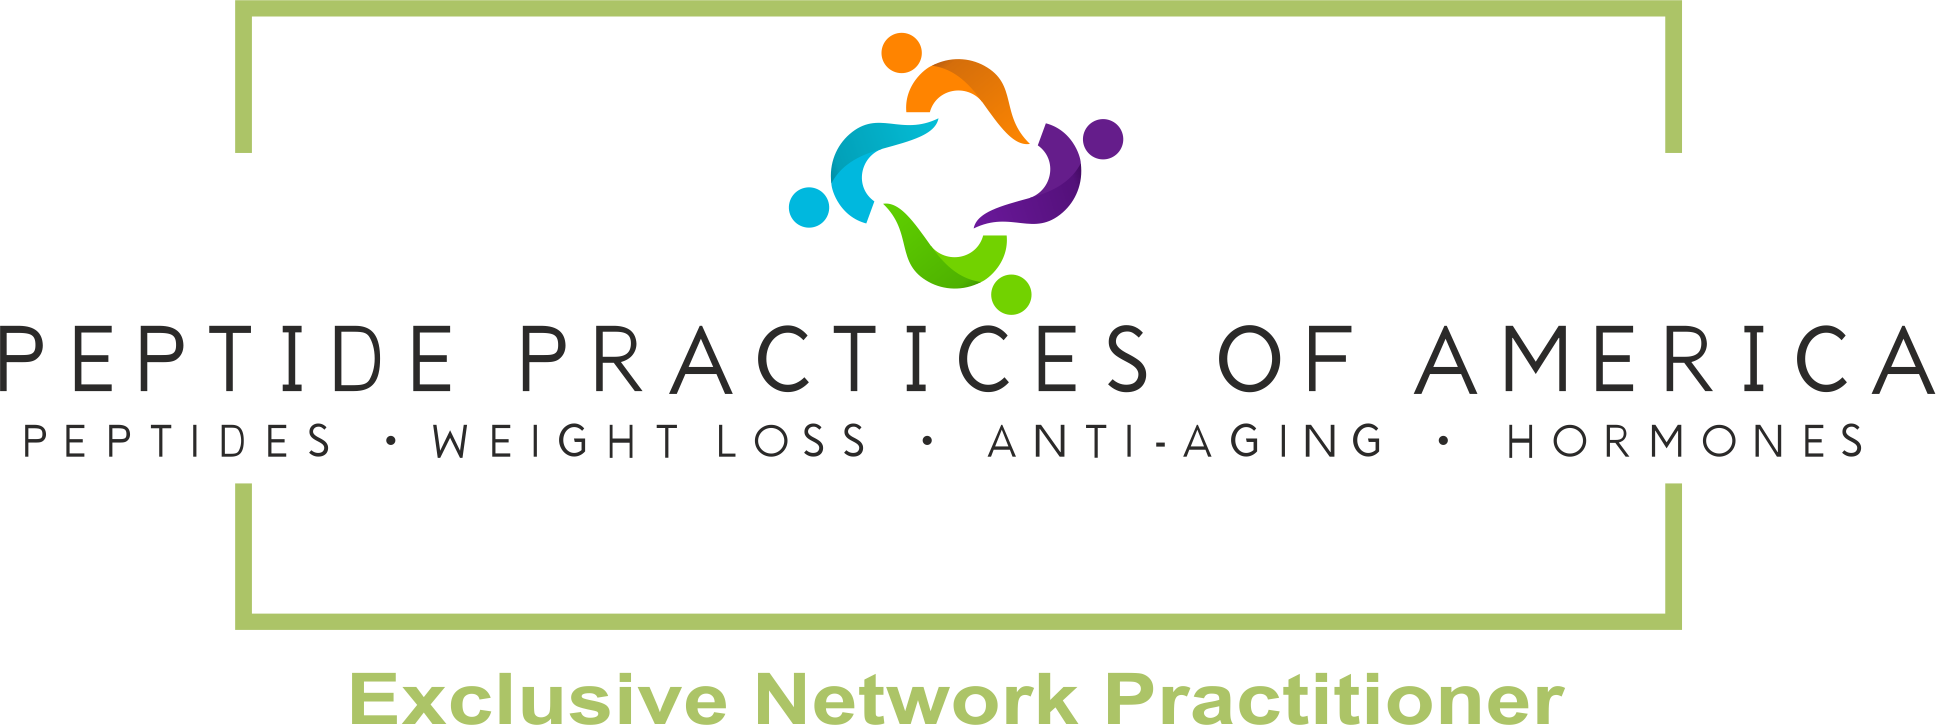 logo-exclusive-network-practitioner